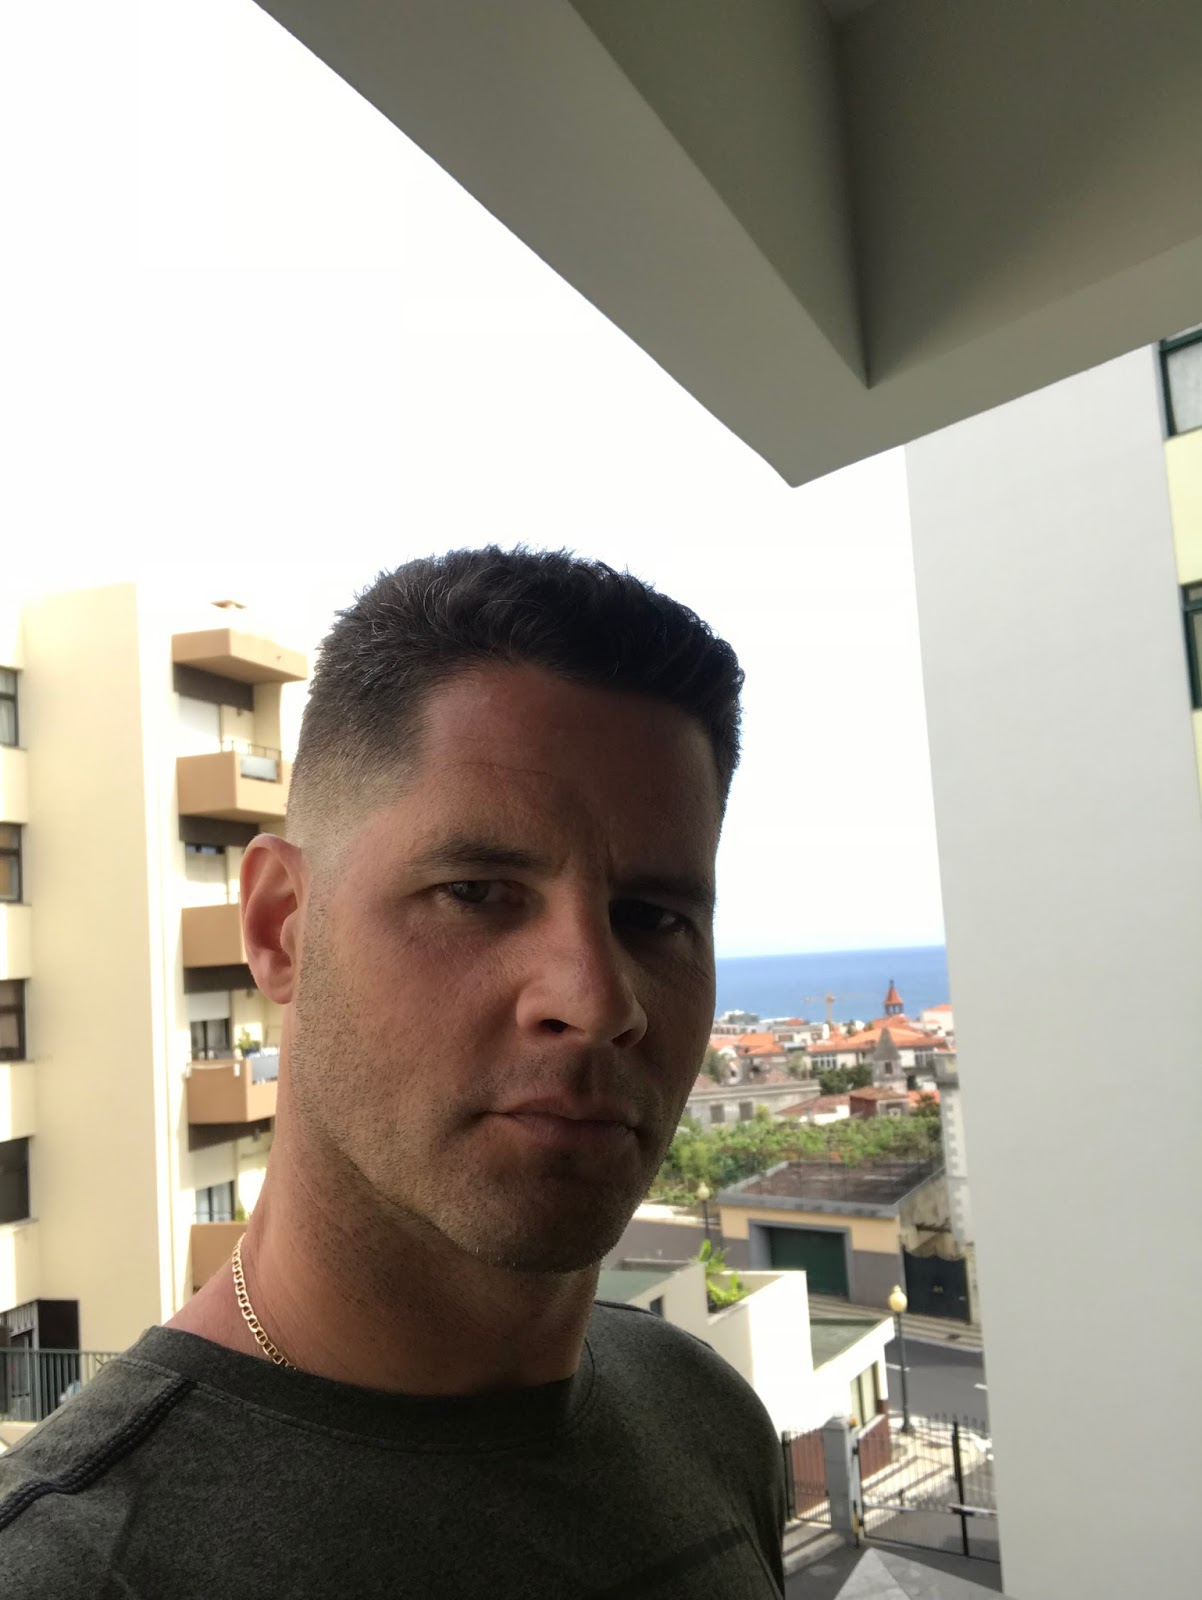 Lifeisgrand Azores 2018 Day 14 Hipster Cut